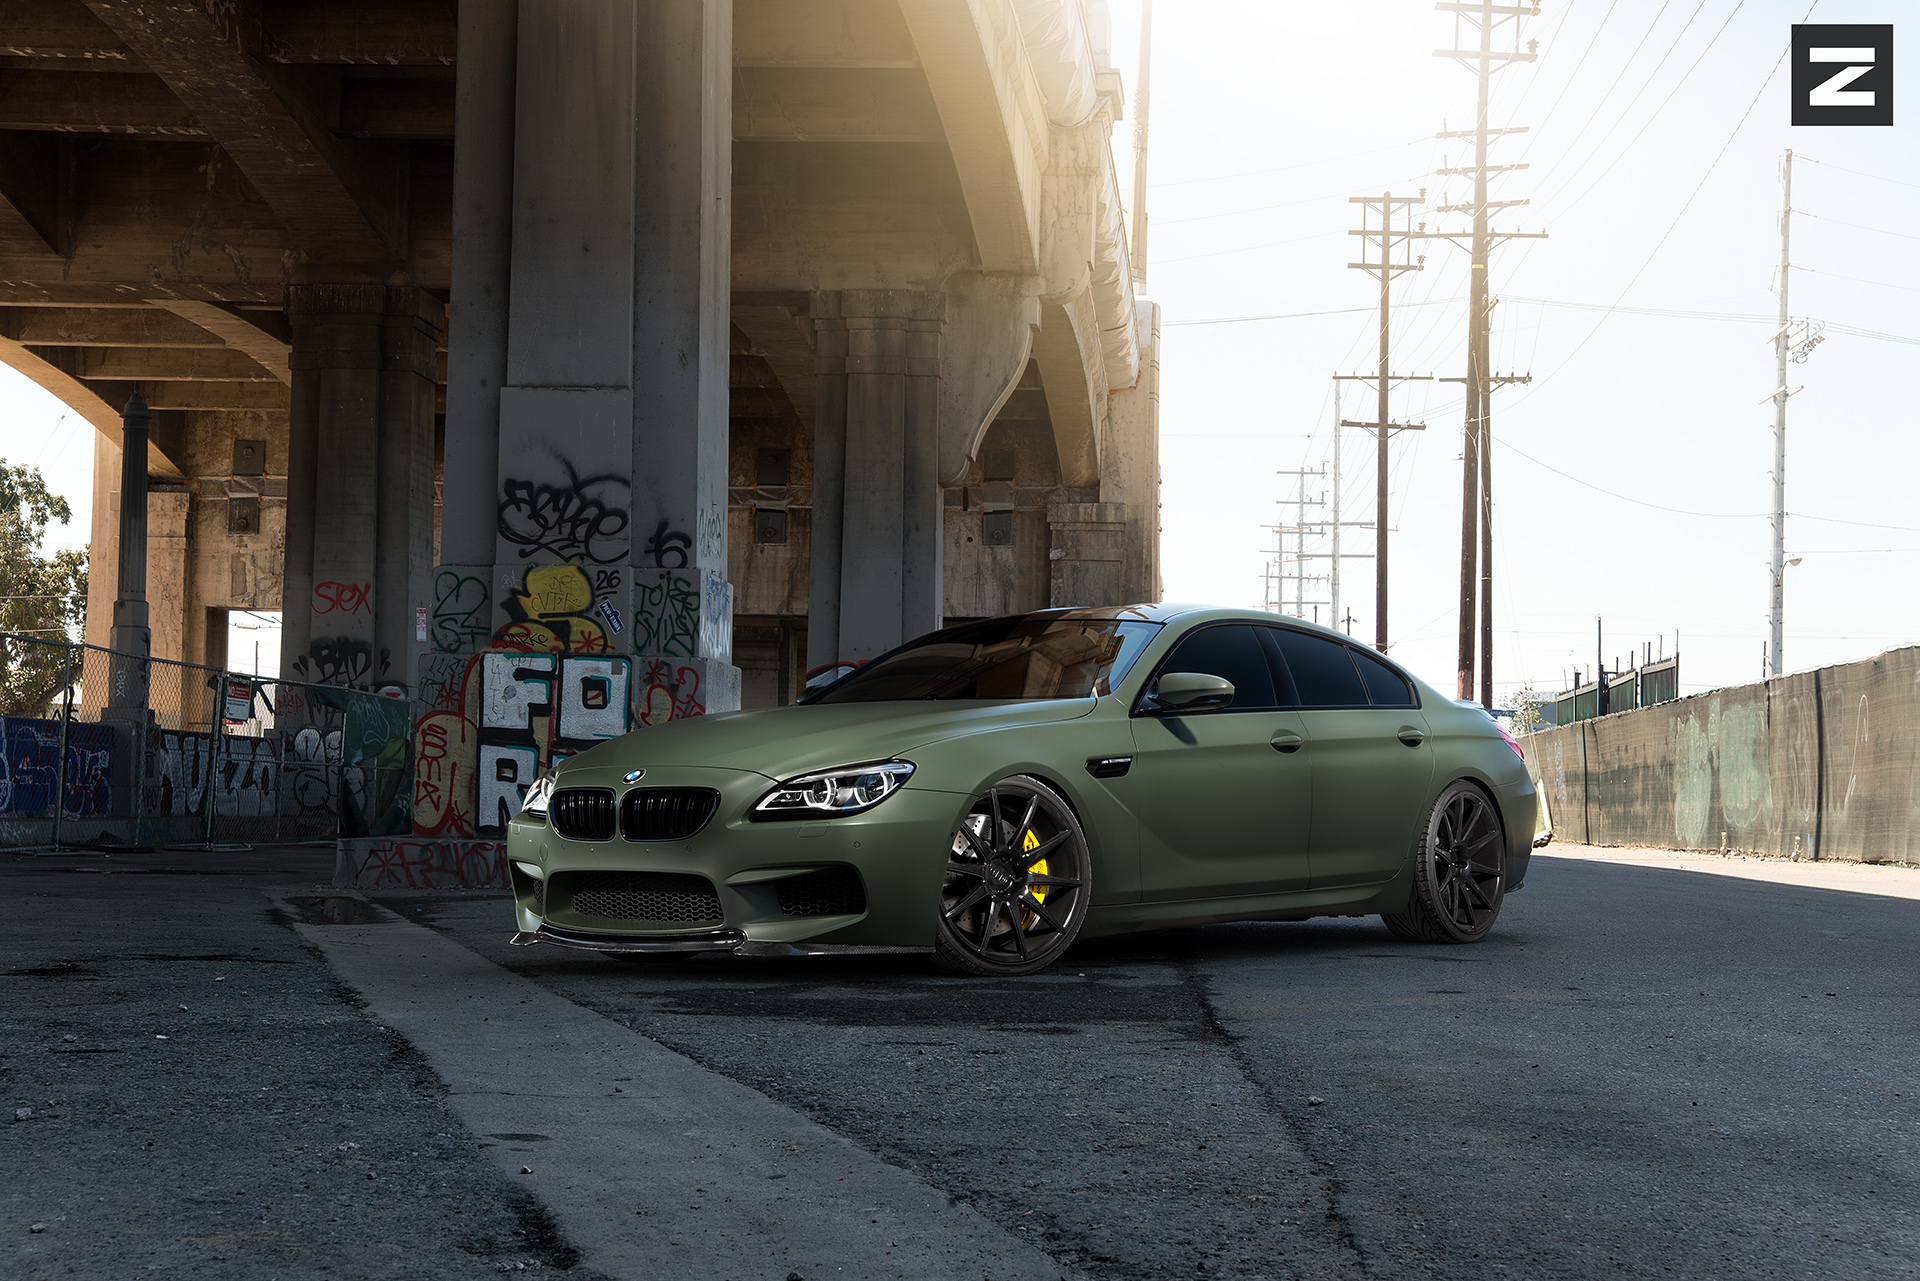 BMW F06 M6 Green Black ZS03